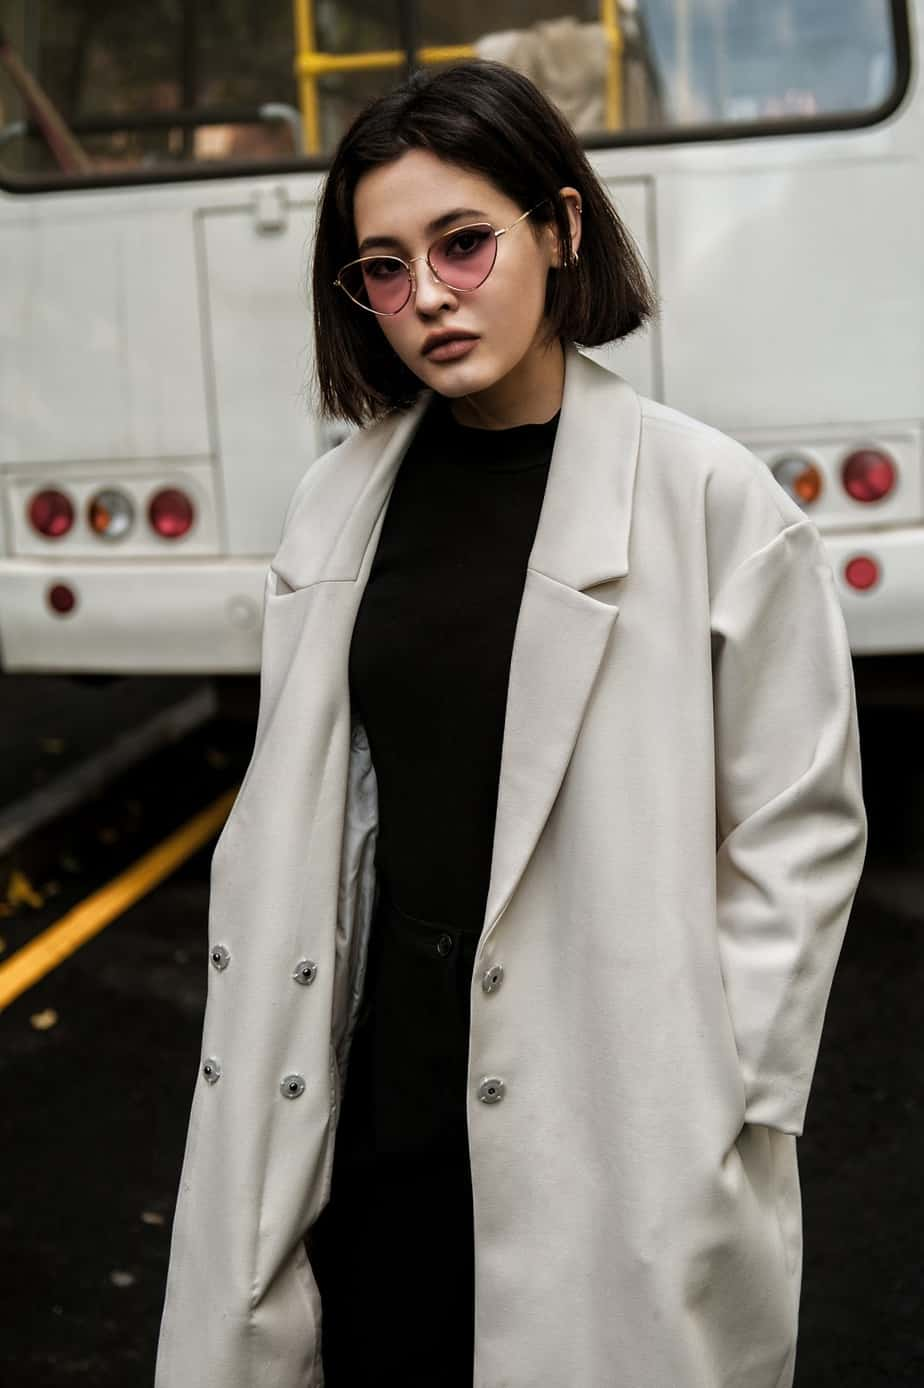 women with sunglasses and jacket